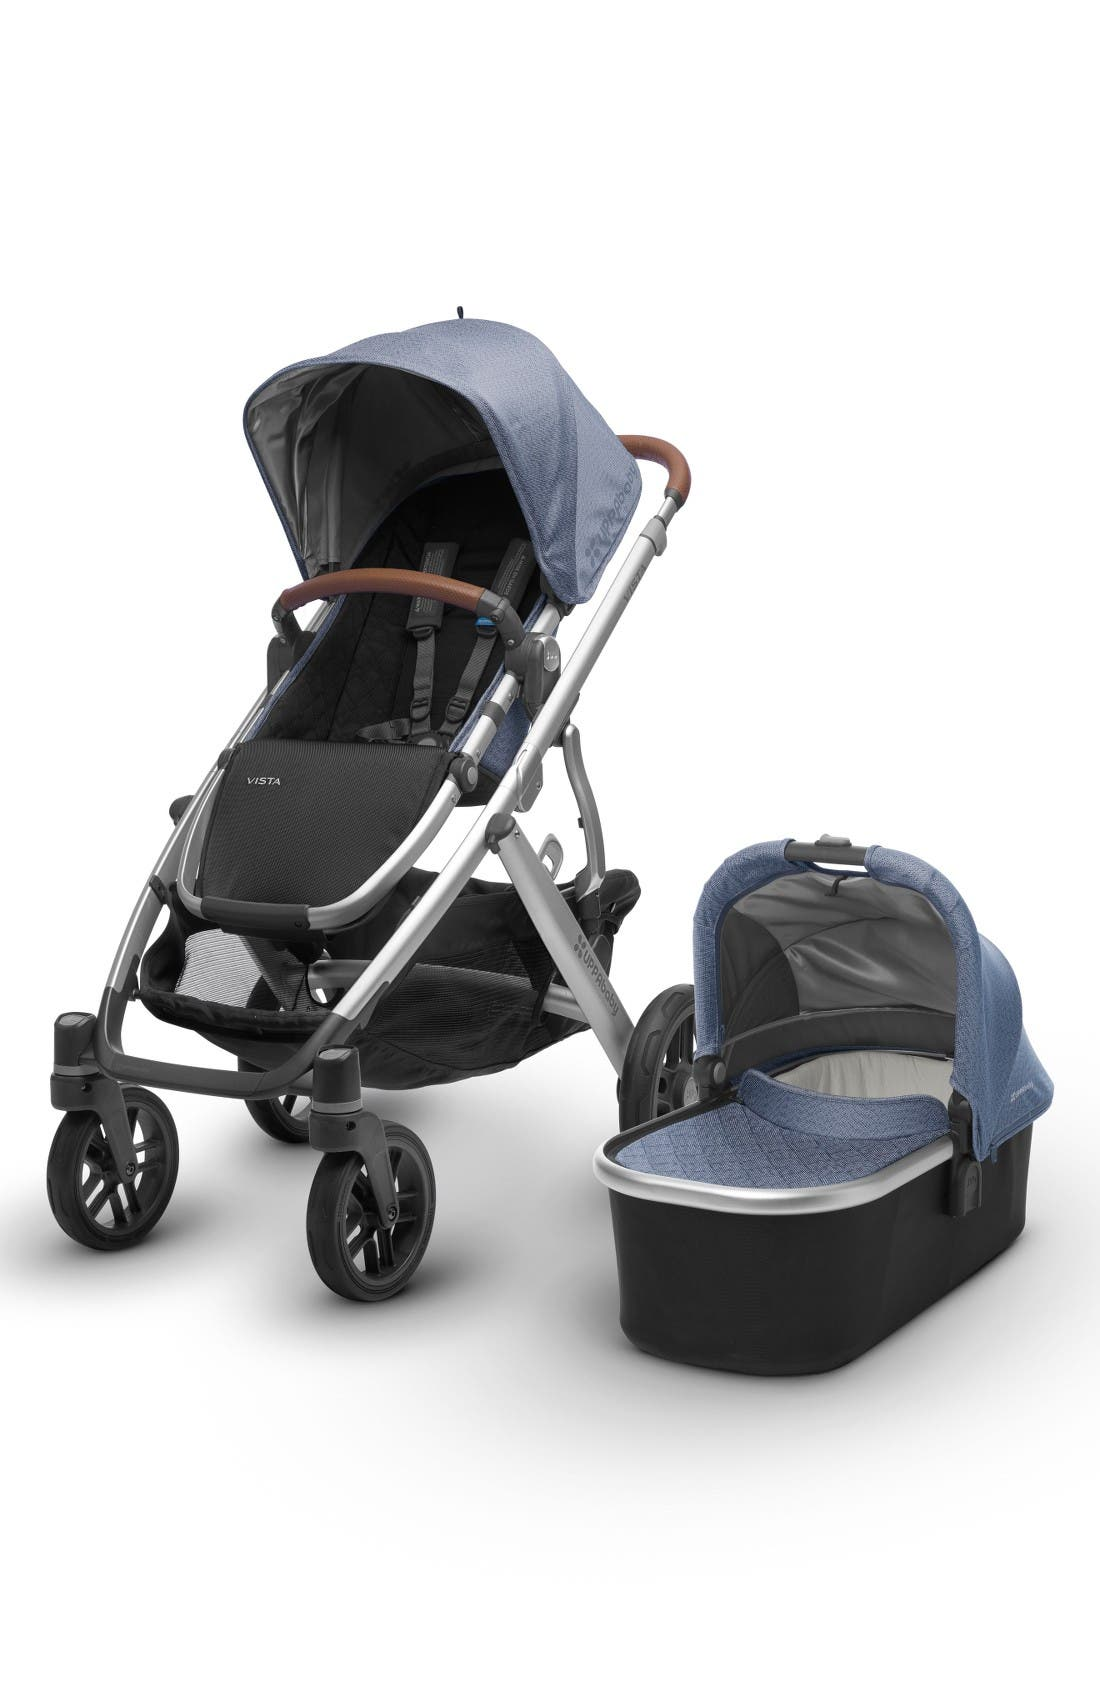 Main Image - UPPAbaby 2017 VISTA Henry Aluminum Frame Convertible Stroller with Bassinet & Toddler Seat